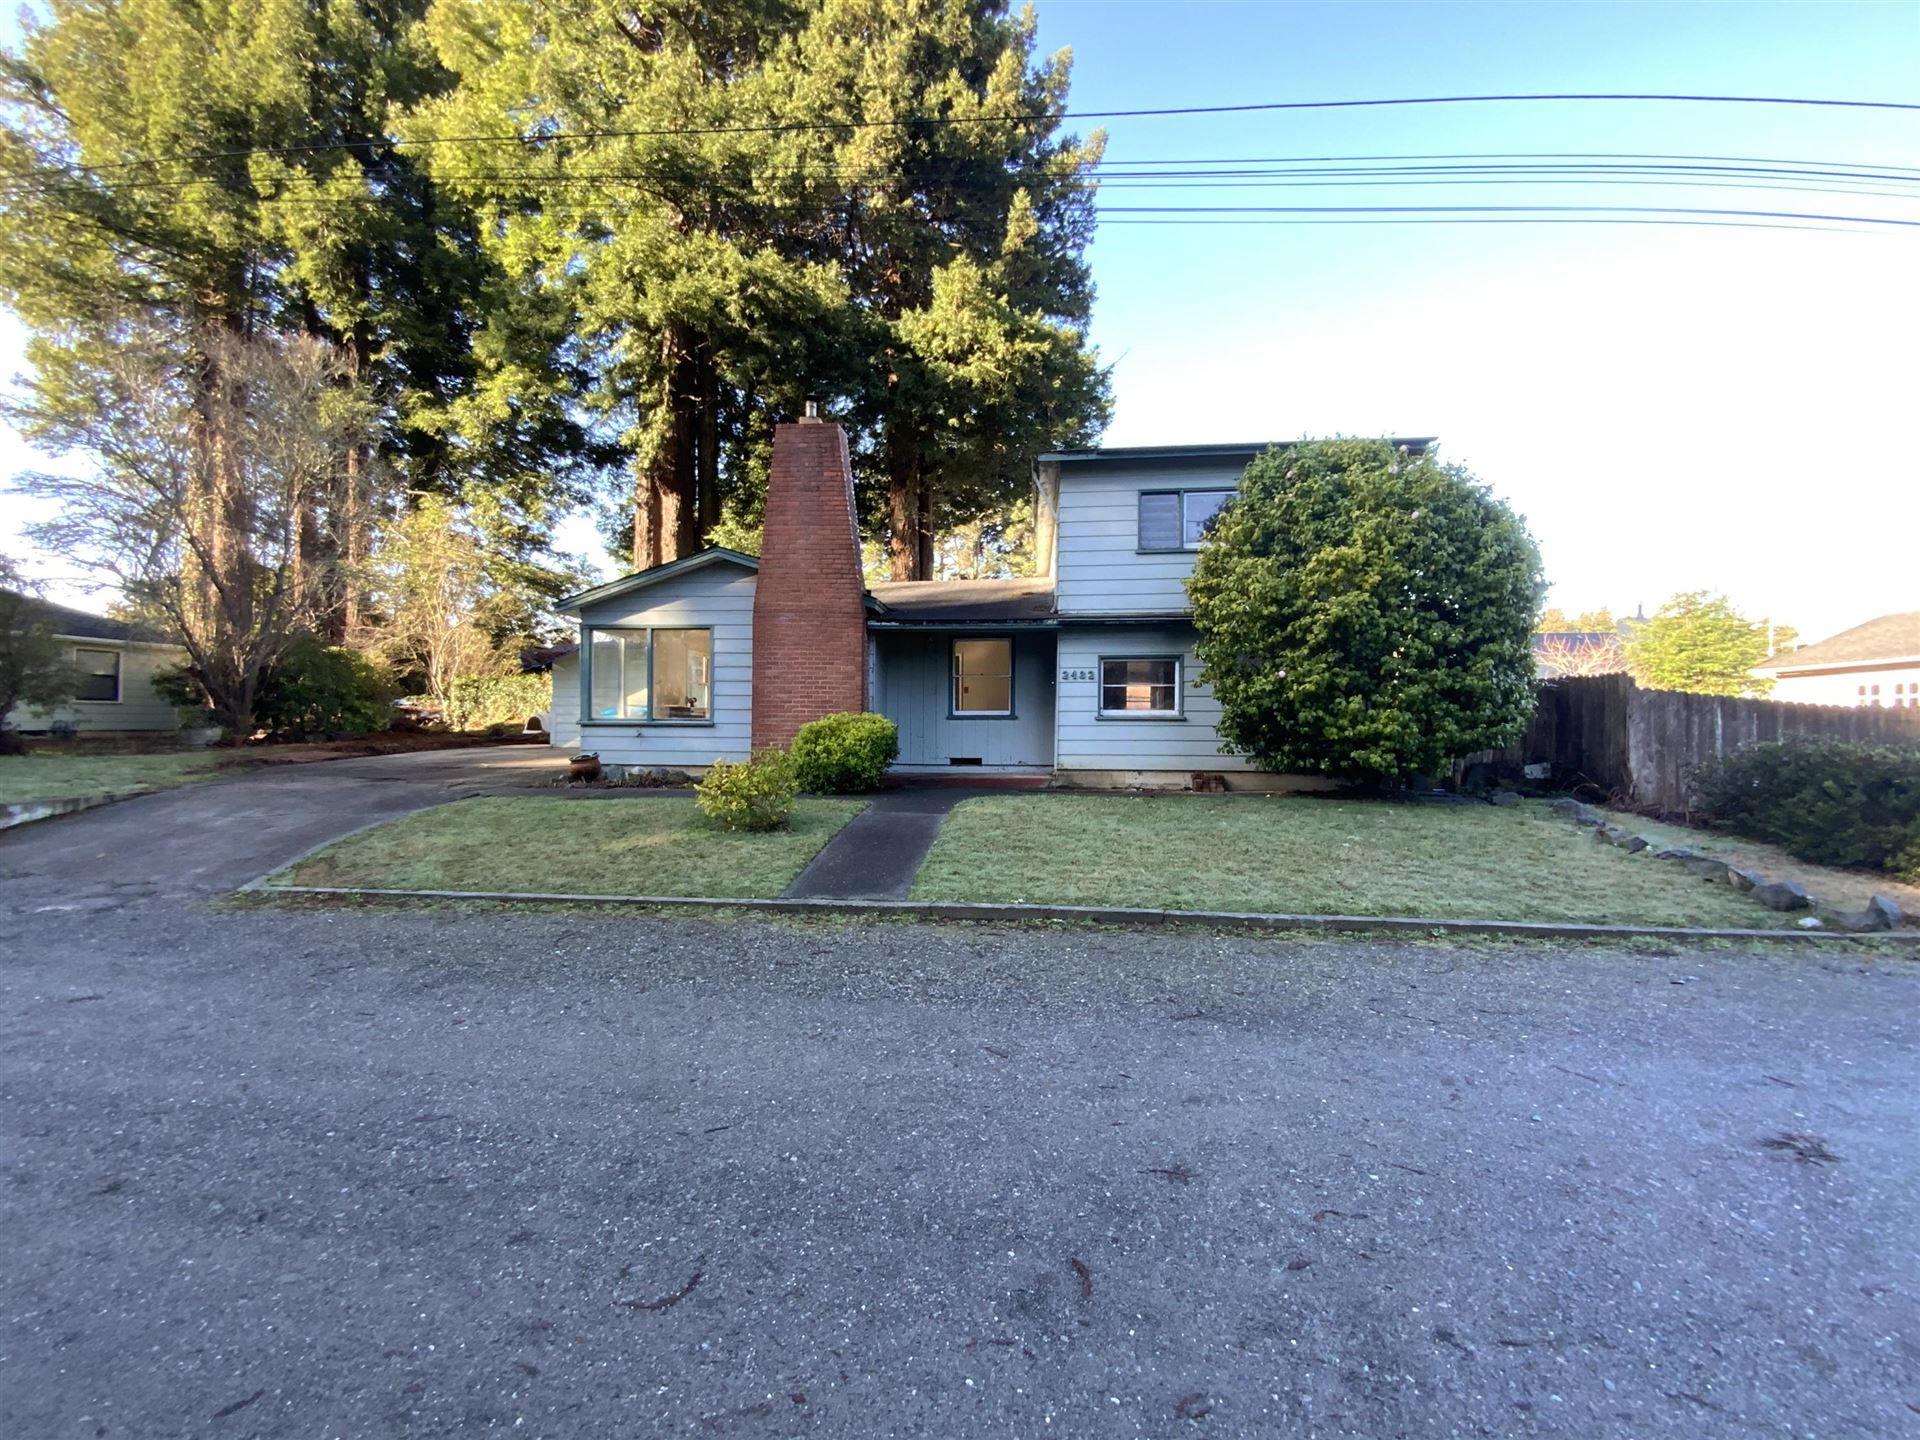 2432 Bainbridge Street, Eureka, CA 95503 - MLS#: 258099